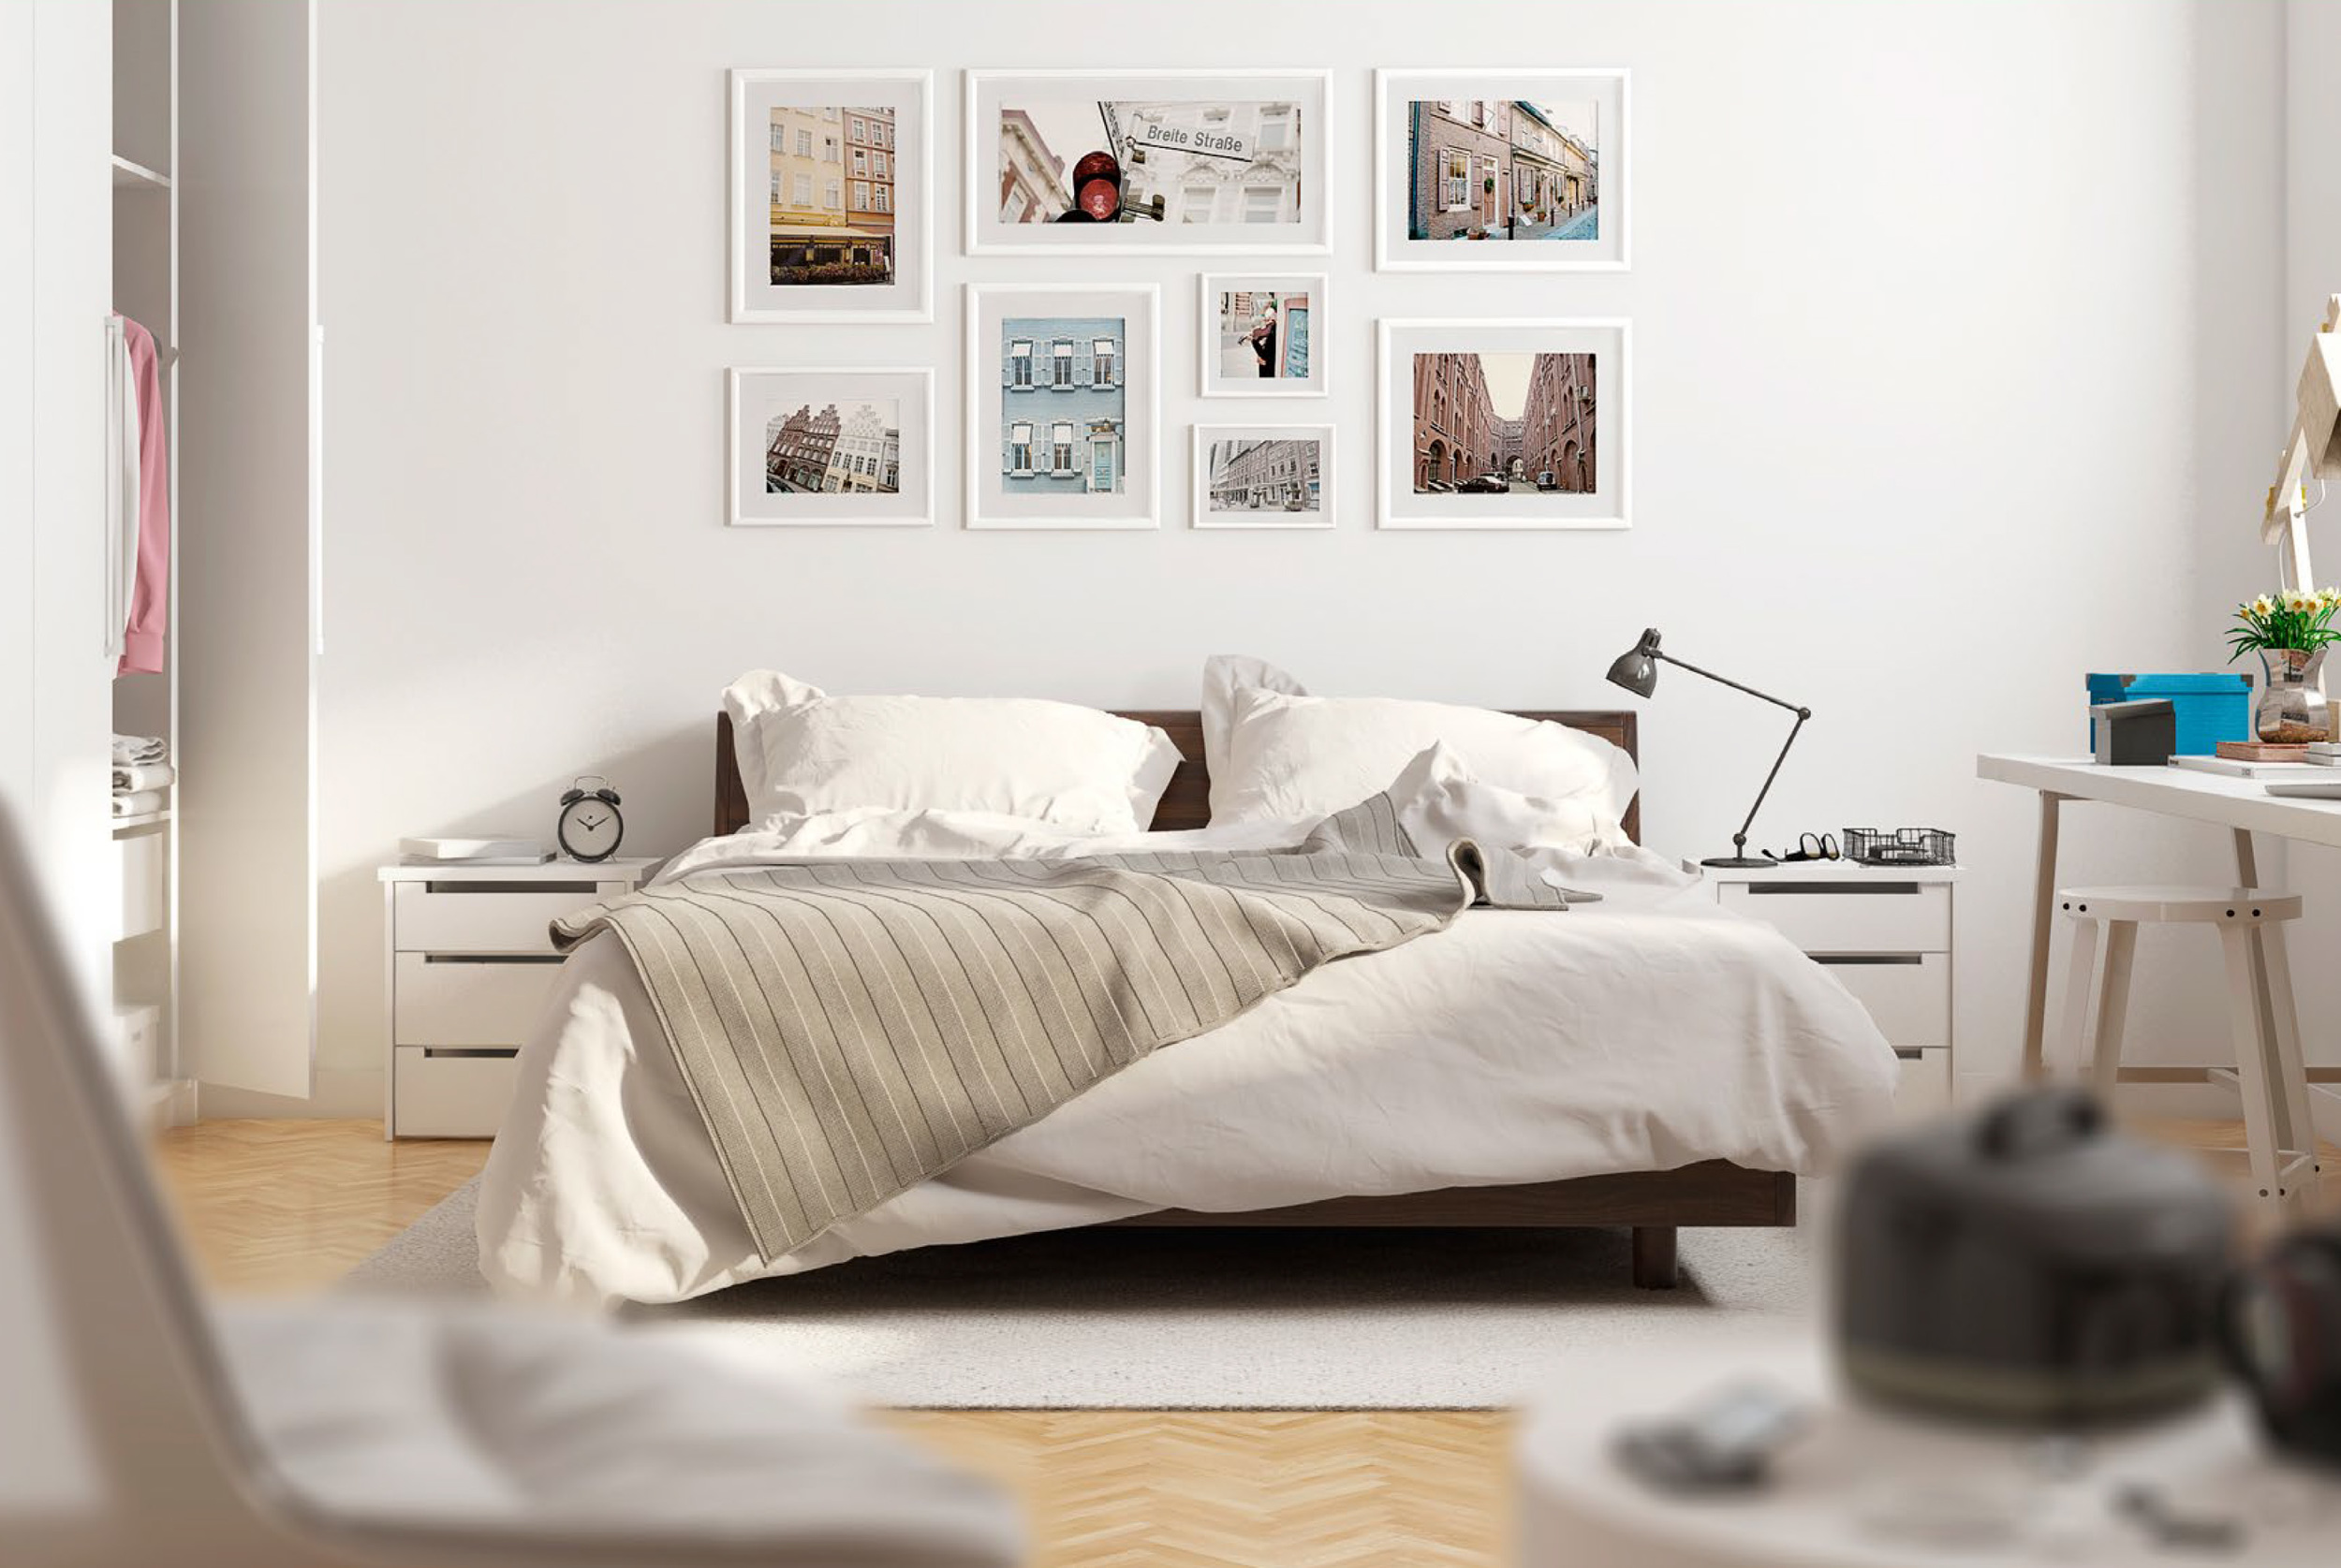 CGI Bedroom Set Scene Photography